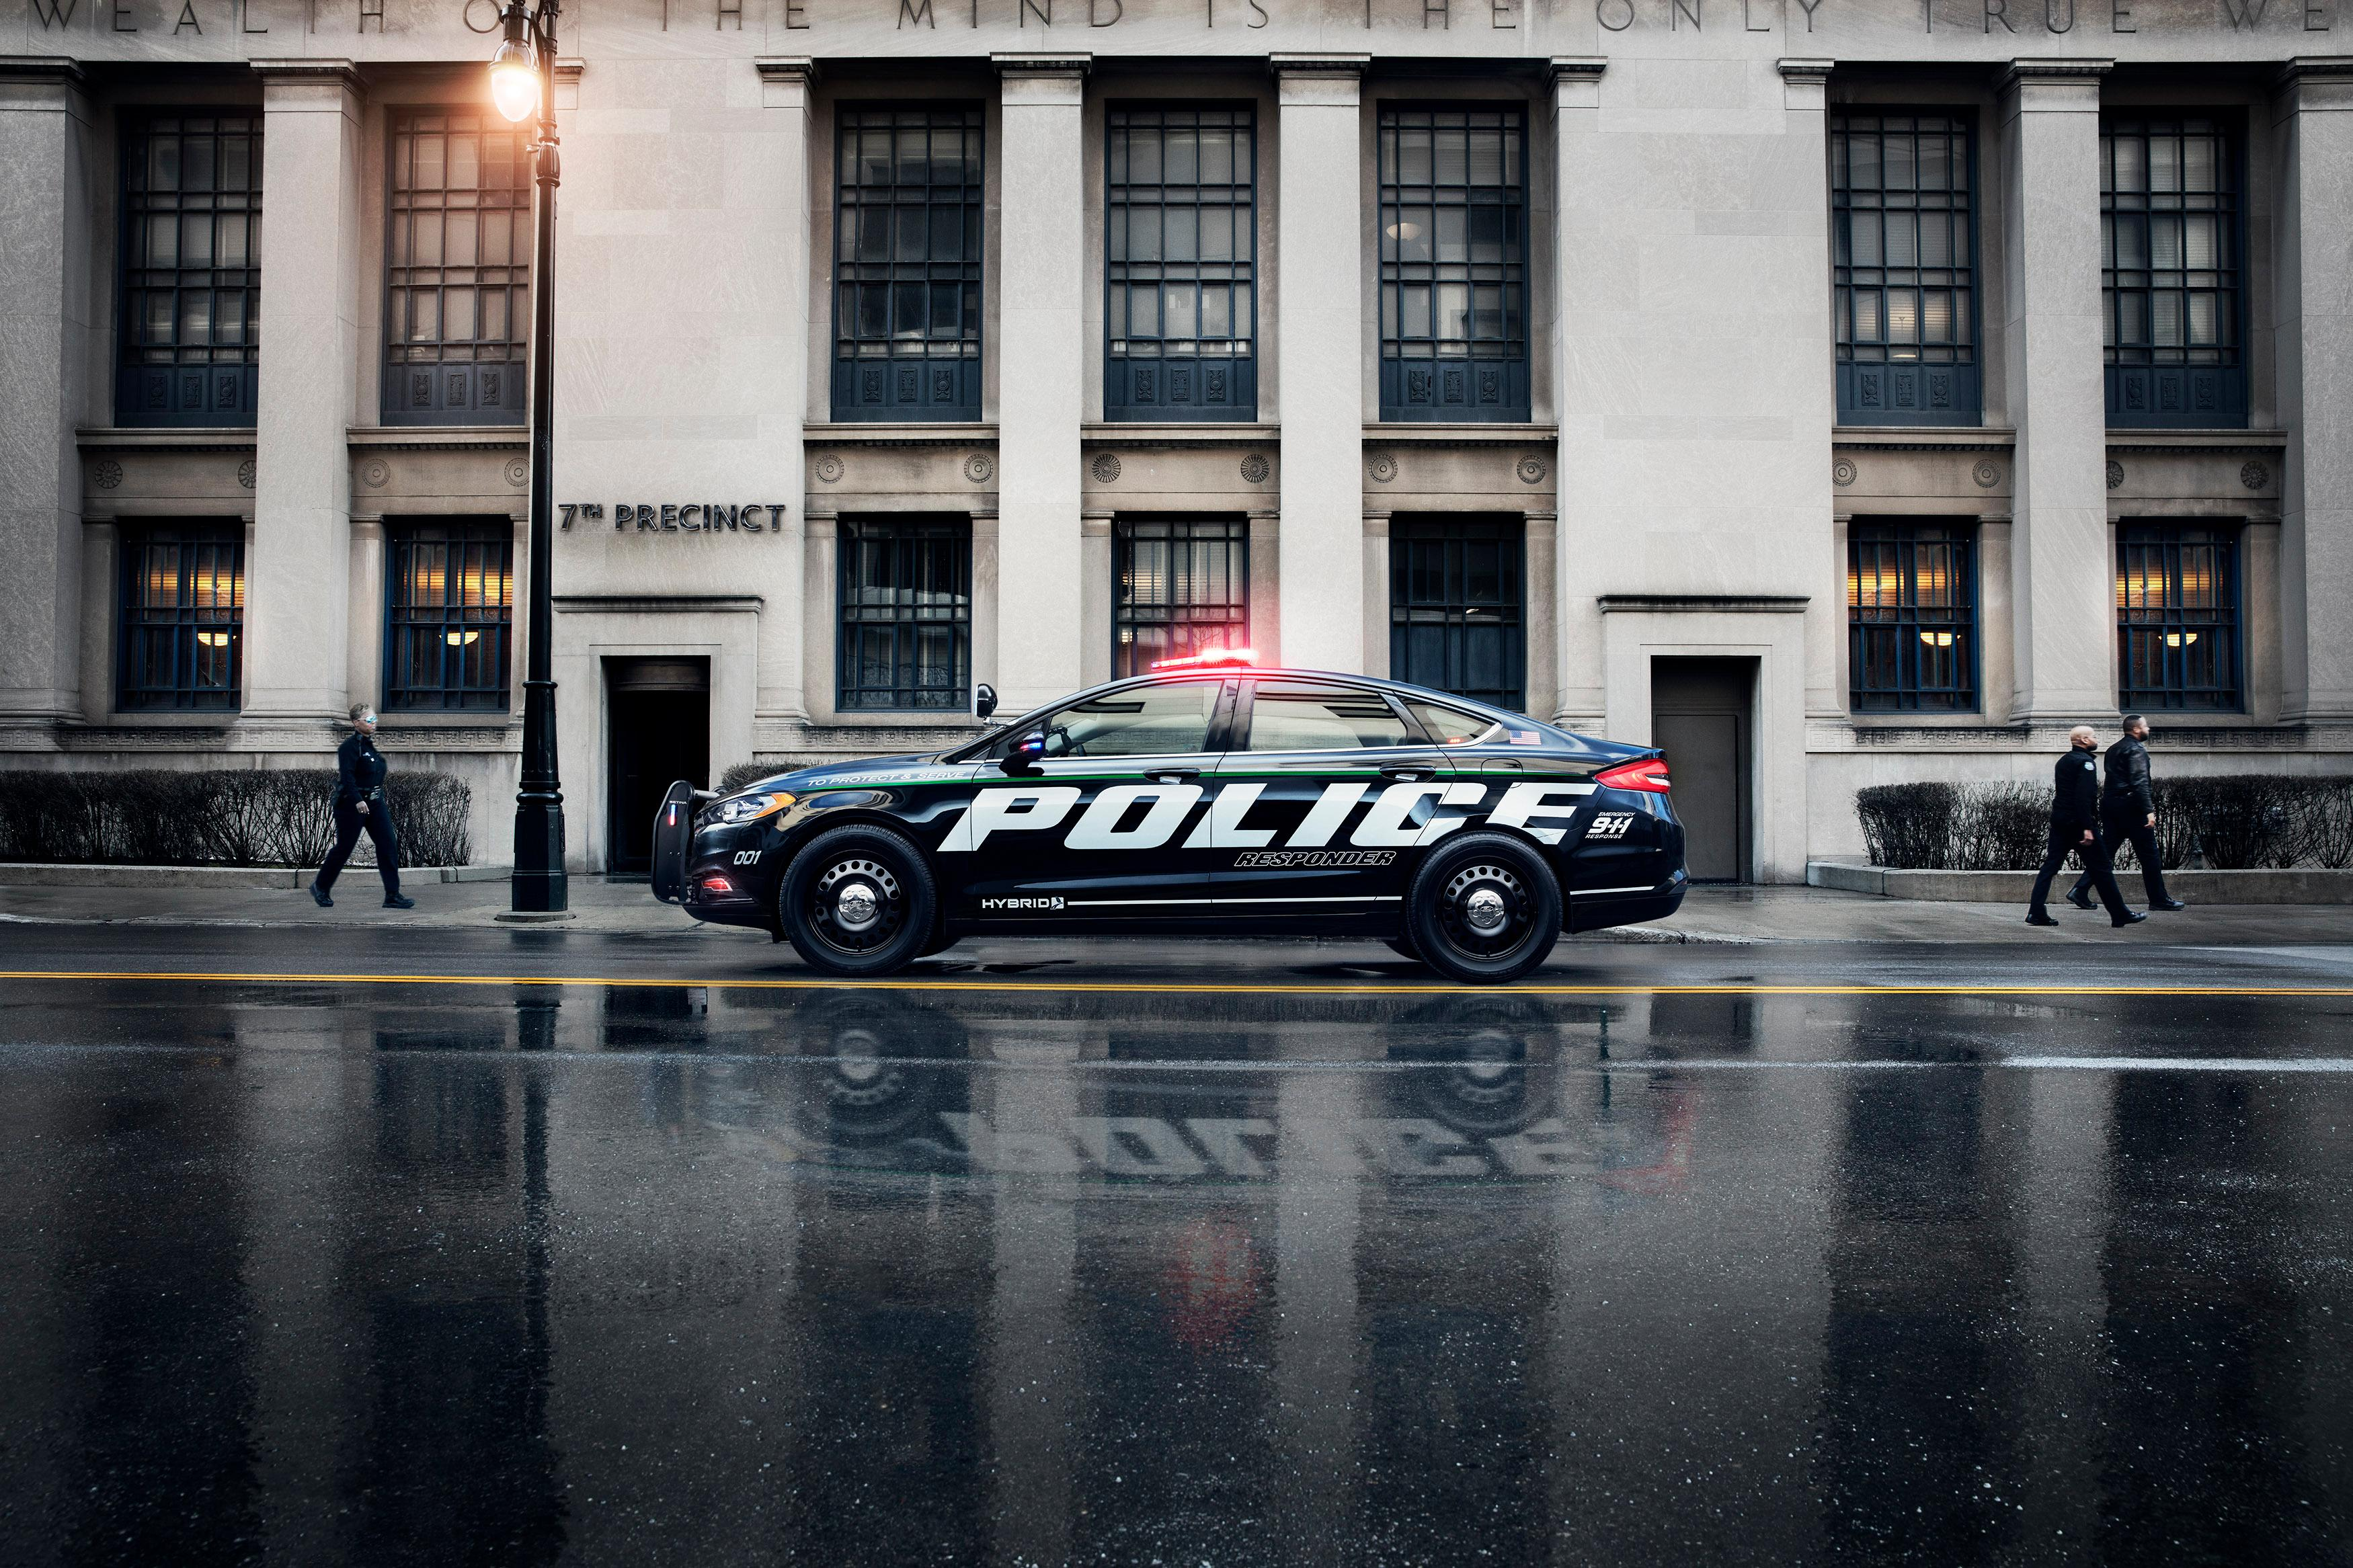 Ford Police Responder Hybrid Sedan (Image courtesy of Ford Motor Co.)